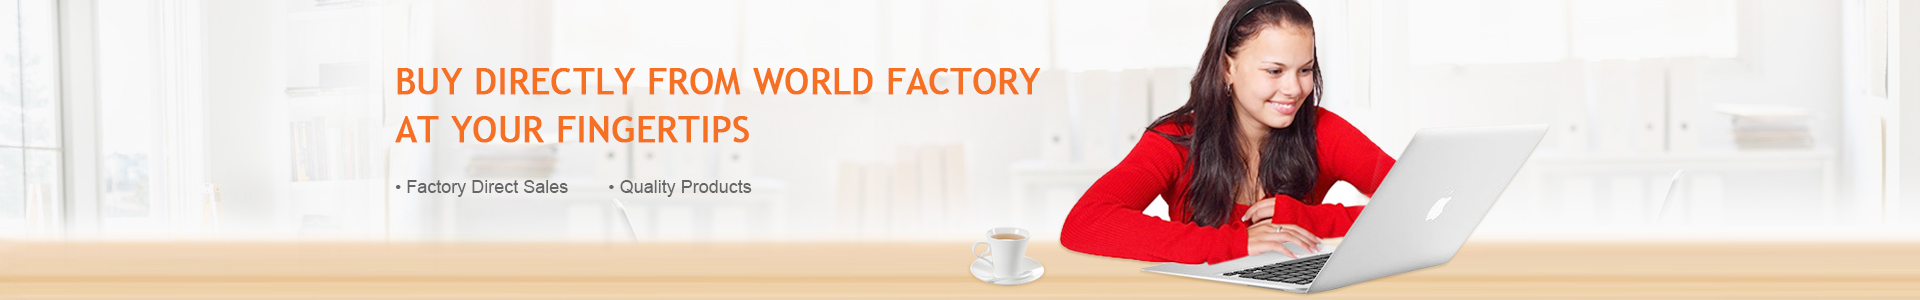 Buy directly from world factory